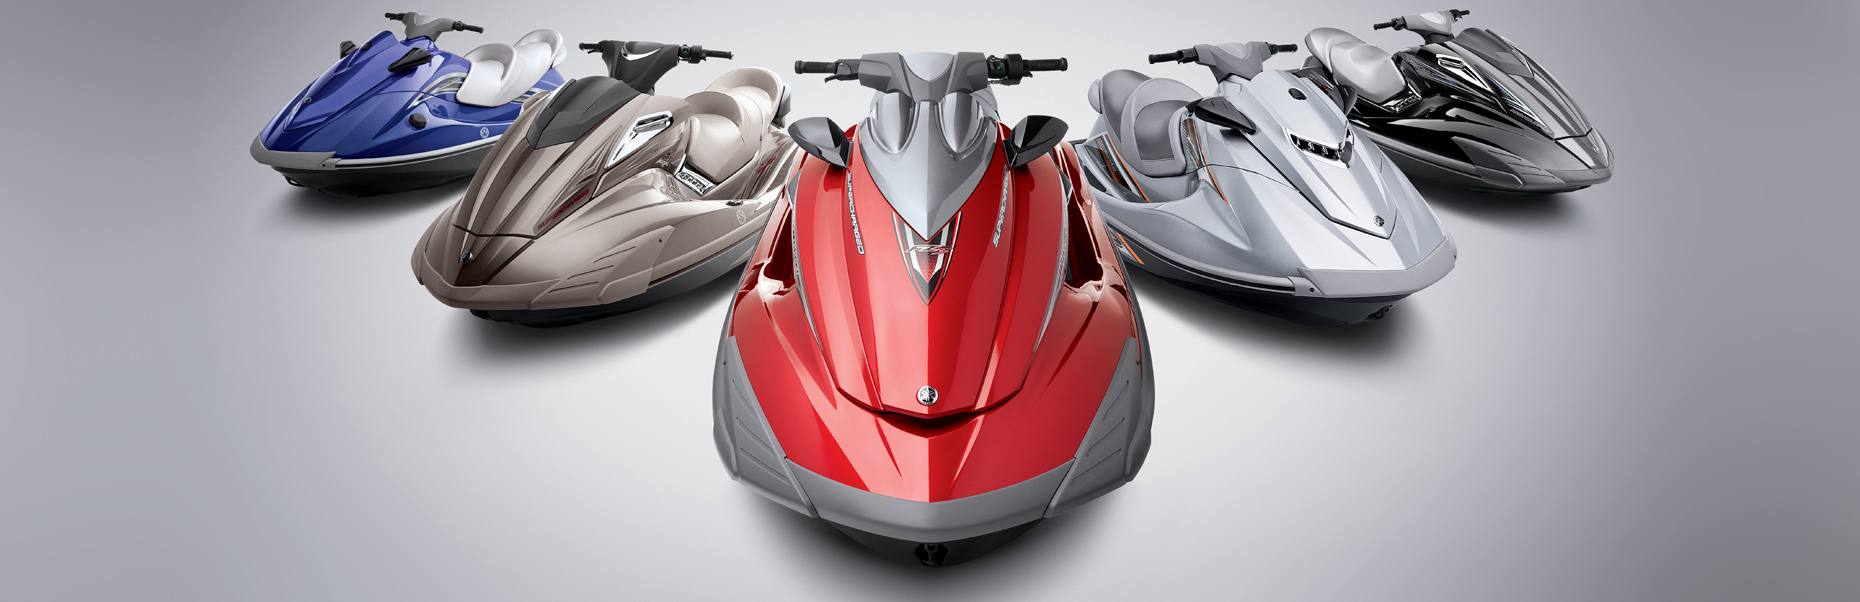 03-2011_waverunner_backcover_a.jpg